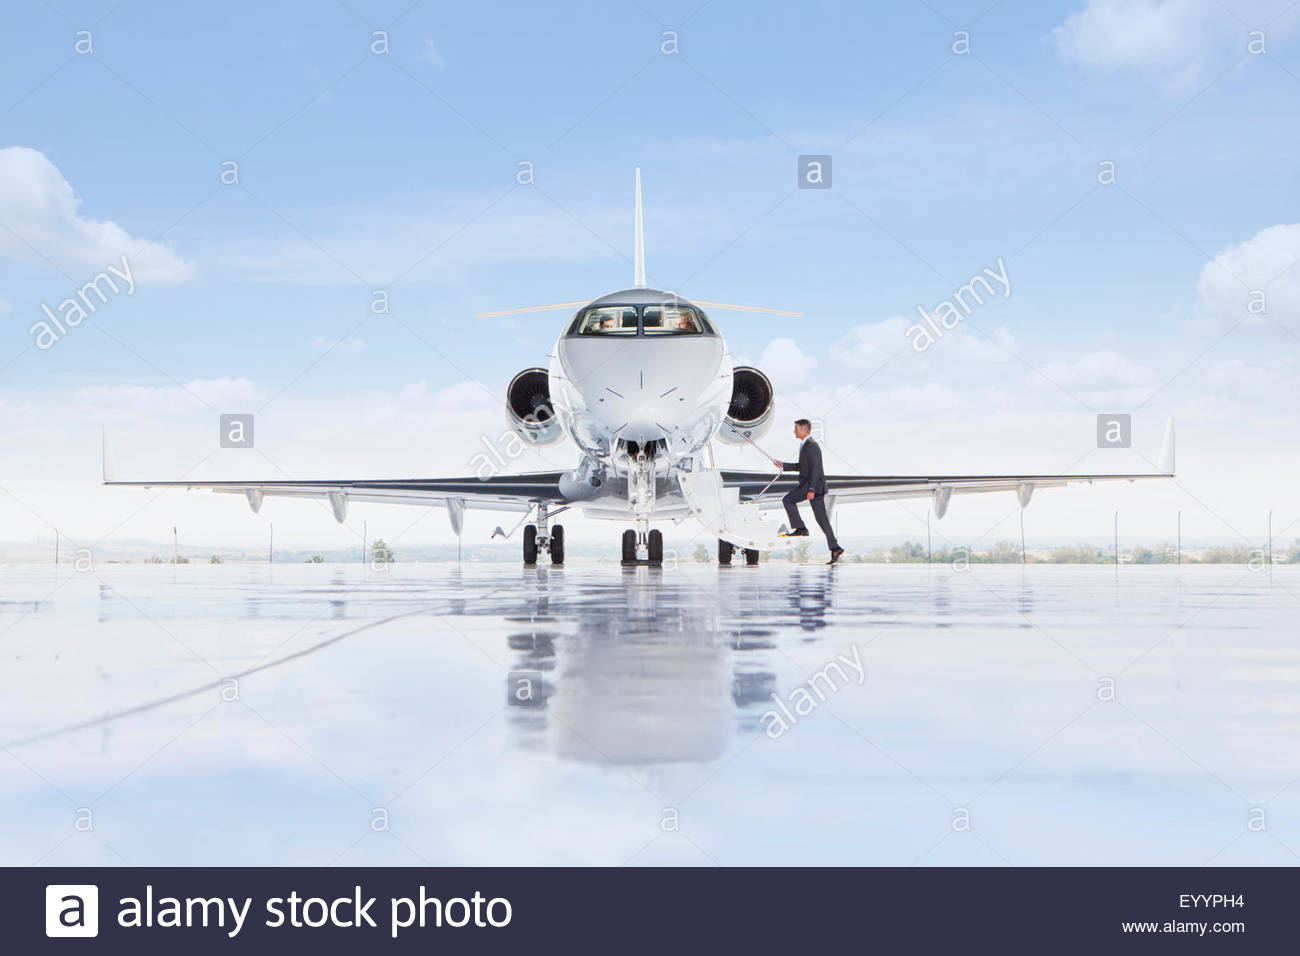 Businessman boarding private jet - Stock Image